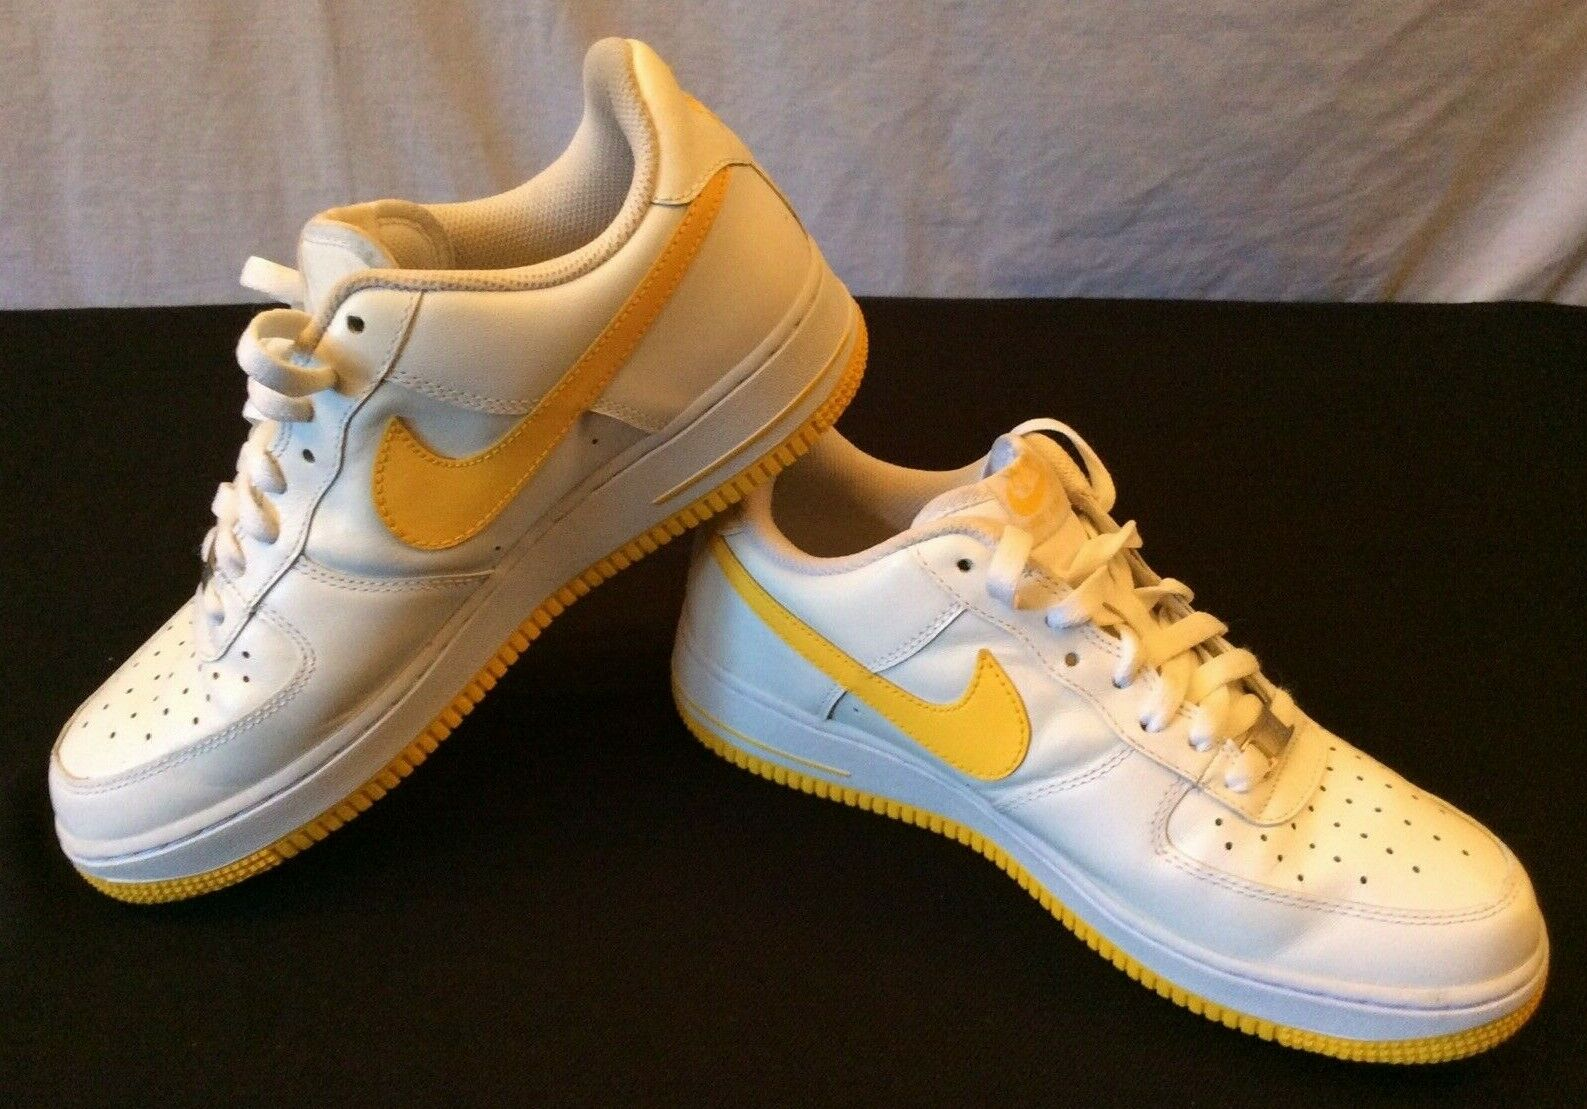 Nike AIR FORCE ONE 1 82 AF1 shoes White Varsity Maize 315122 172 - Mens 8.5  VGC